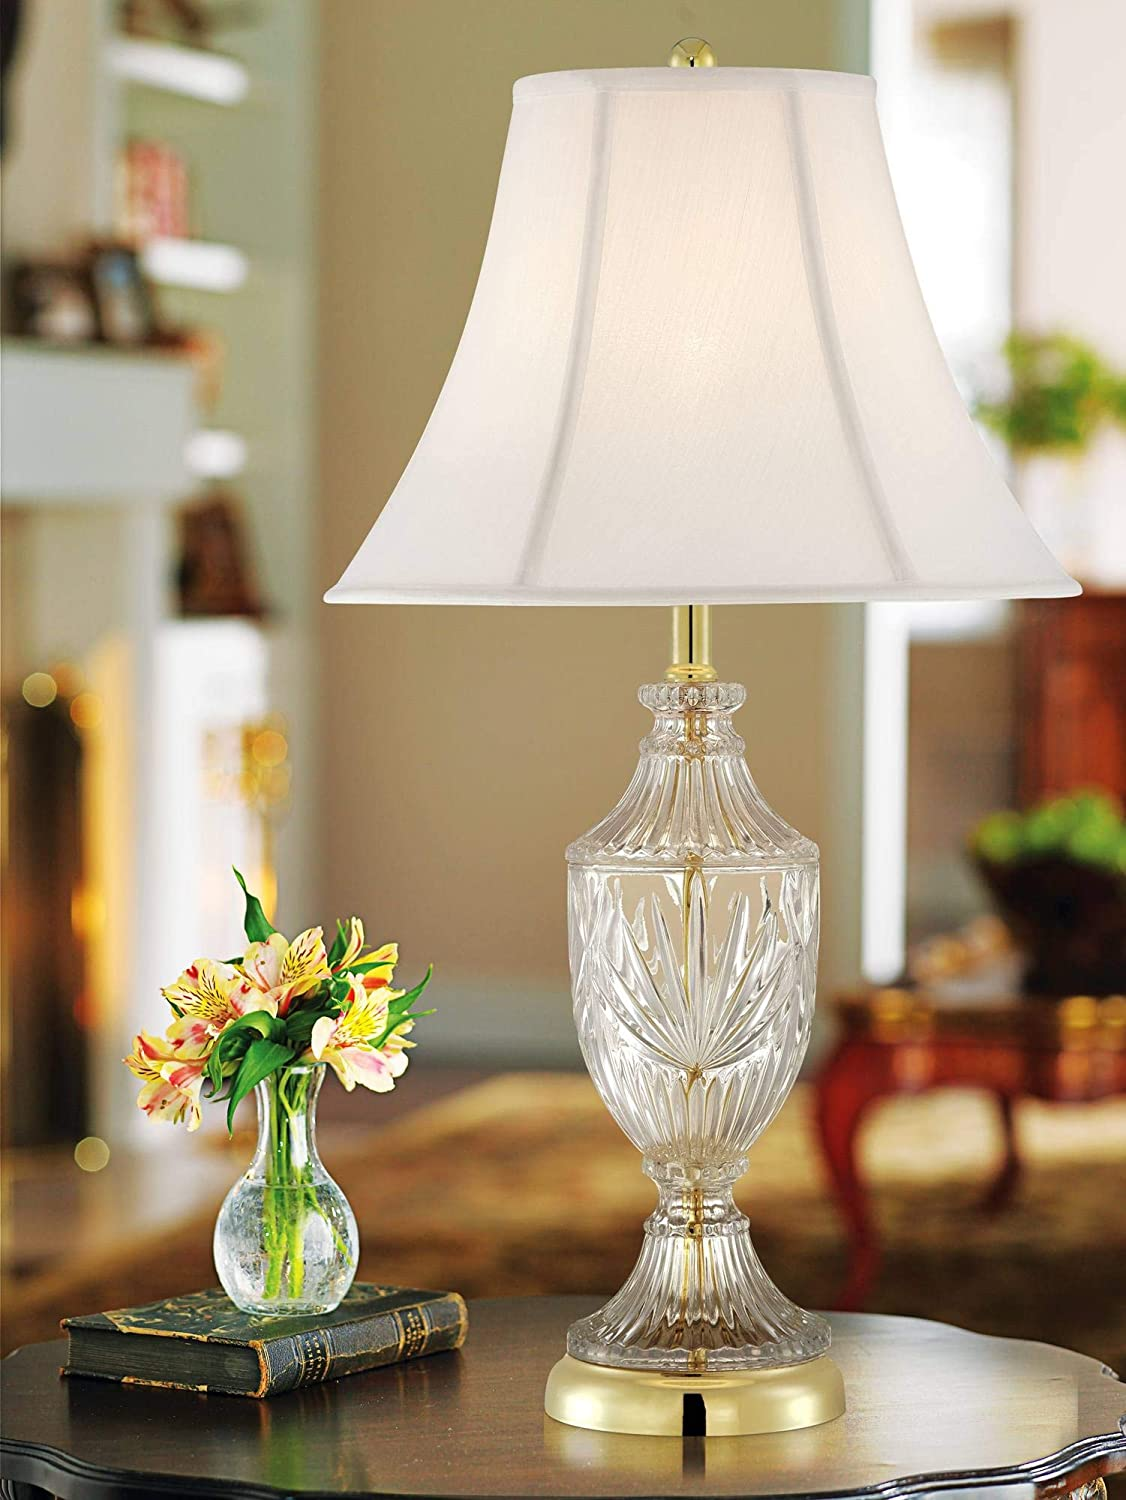 Traditional Table Lamp Cut Glass Urn Brass White Cream Bell Shade for Living Room Family Bedroom Bedside Nightstand